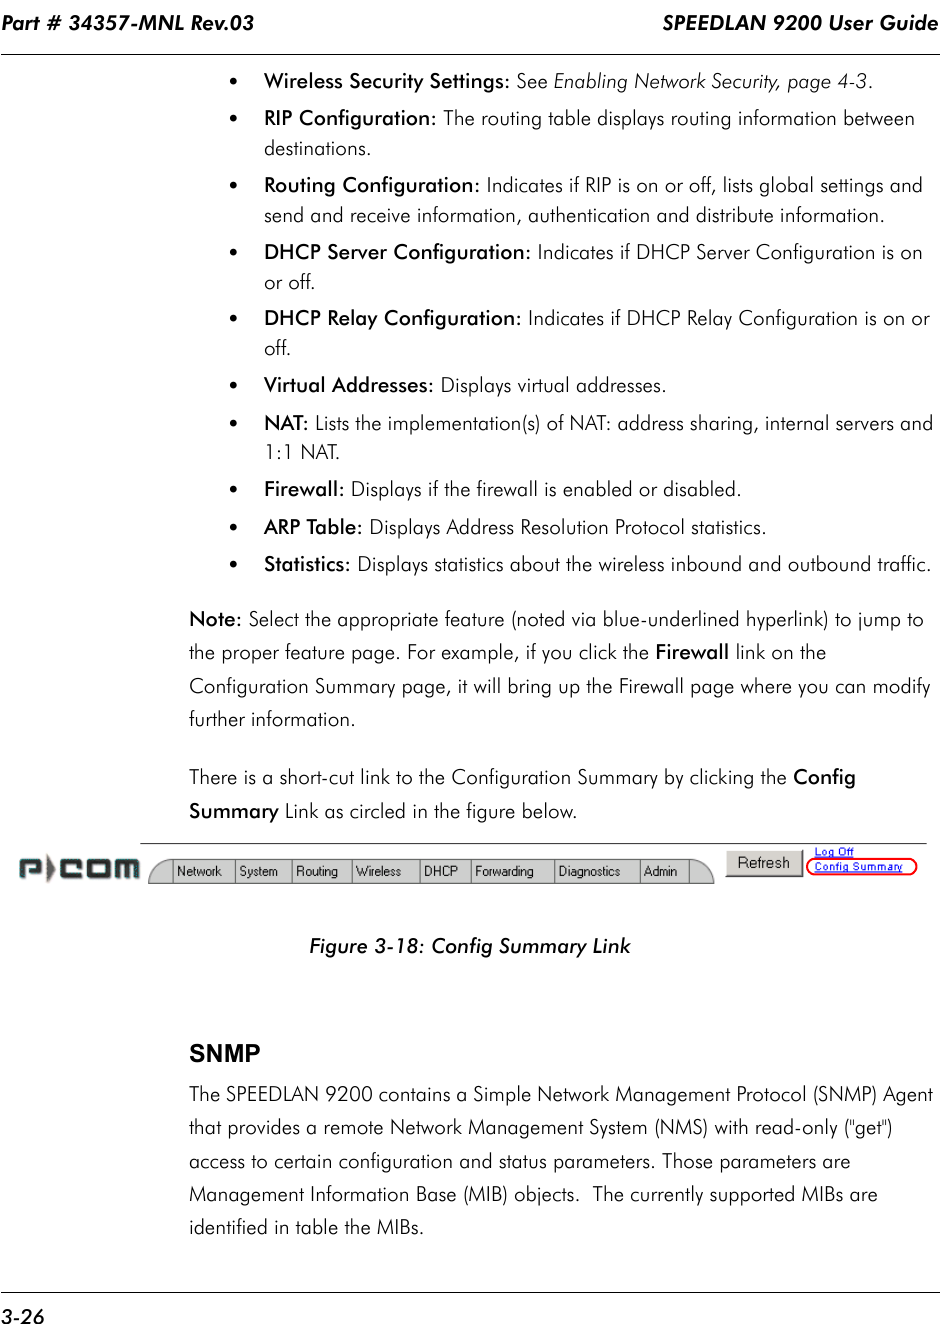 """Part # 34357-MNL Rev.03                                                                   SPEEDLAN 9200 User Guide 3-26•Wireless Security Settings: See Enabling Network Security, page 4-3.•RIP Configuration: The routing table displays routing information between destinations.•Routing Configuration: Indicates if RIP is on or off, lists global settings and send and receive information, authentication and distribute information.•DHCP Server Configuration: Indicates if DHCP Server Configuration is on or off.•DHCP Relay Configuration: Indicates if DHCP Relay Configuration is on or off.•Virtual Addresses: Displays virtual addresses.•NAT: Lists the implementation(s) of NAT: address sharing, internal servers and 1:1 NAT. •Firewall: Displays if the firewall is enabled or disabled. •ARP Table: Displays Address Resolution Protocol statistics.•Statistics: Displays statistics about the wireless inbound and outbound traffic.Note: Select the appropriate feature (noted via blue-underlined hyperlink) to jump to the proper feature page. For example, if you click the Firewall link on the Configuration Summary page, it will bring up the Firewall page where you can modify further information.   There is a short-cut link to the Configuration Summary by clicking the Config Summary Link as circled in the figure below.Figure 3-18: Config Summary LinkSNMPThe SPEEDLAN 9200 contains a Simple Network Management Protocol (SNMP) Agent that provides a remote Network Management System (NMS) with read-only (""""get"""") access to certain configuration and status parameters. Those parameters are Management Information Base (MIB) objects.  The currently supported MIBs are identified in table the MIBs."""